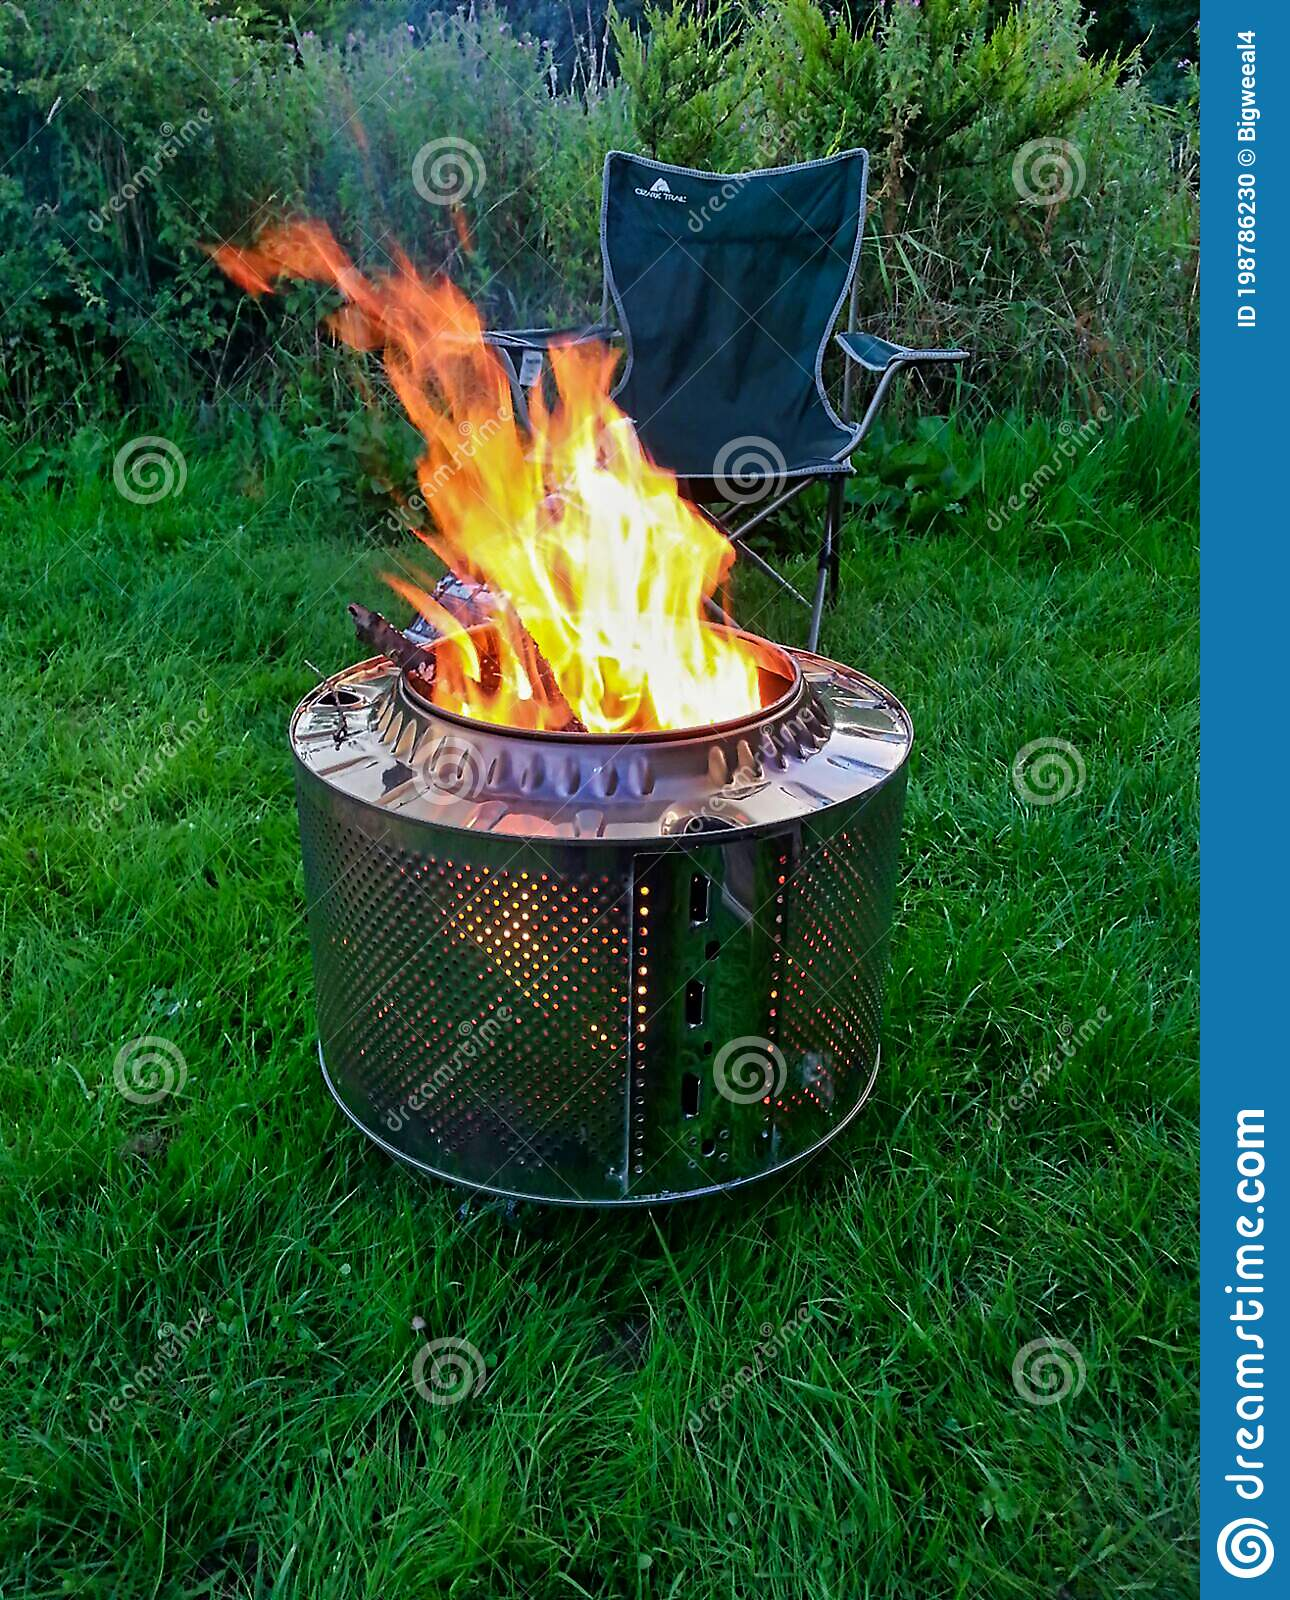 Safe Camp Fire Pit Stock Photo Image Of Fire Washing 198786230